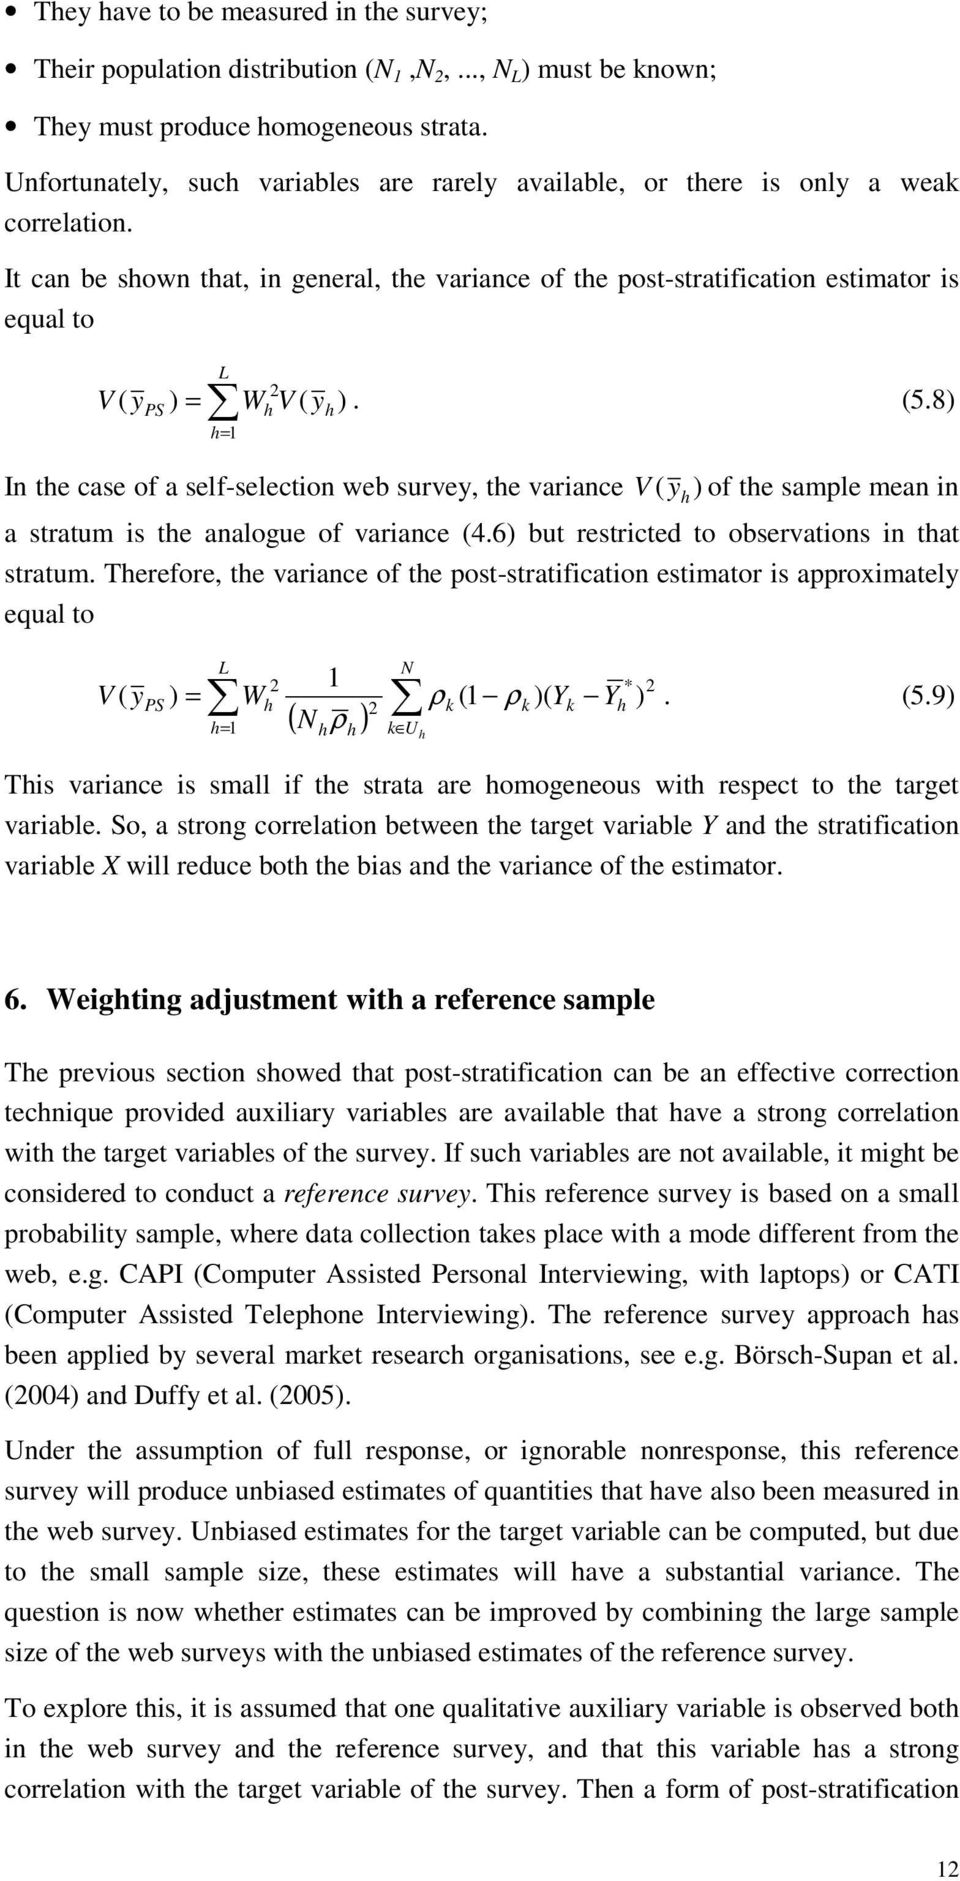 8 S In te case of a self-selection web surve, te variance ( of te saple ean in a stratu is te analoue of variance (4.6 but restricted to observations in tat stratu.